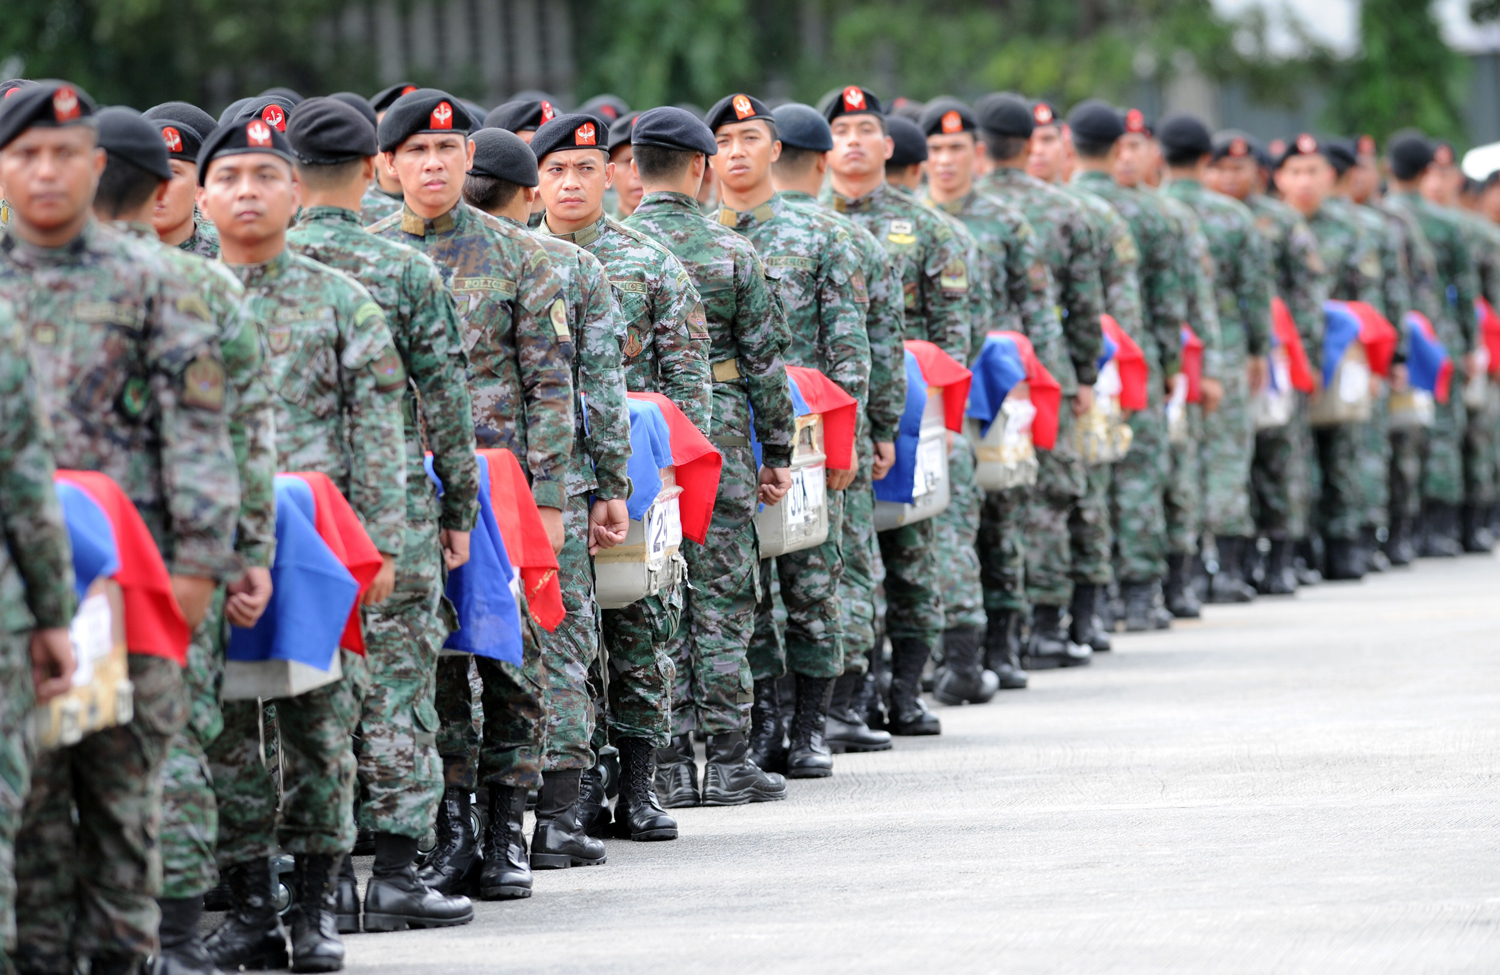 Philippine police commandos stand at attention next to the flag-draped coffins of their slain comrades shortly after arriving at a military base in Manila on Jan. 29, 2015